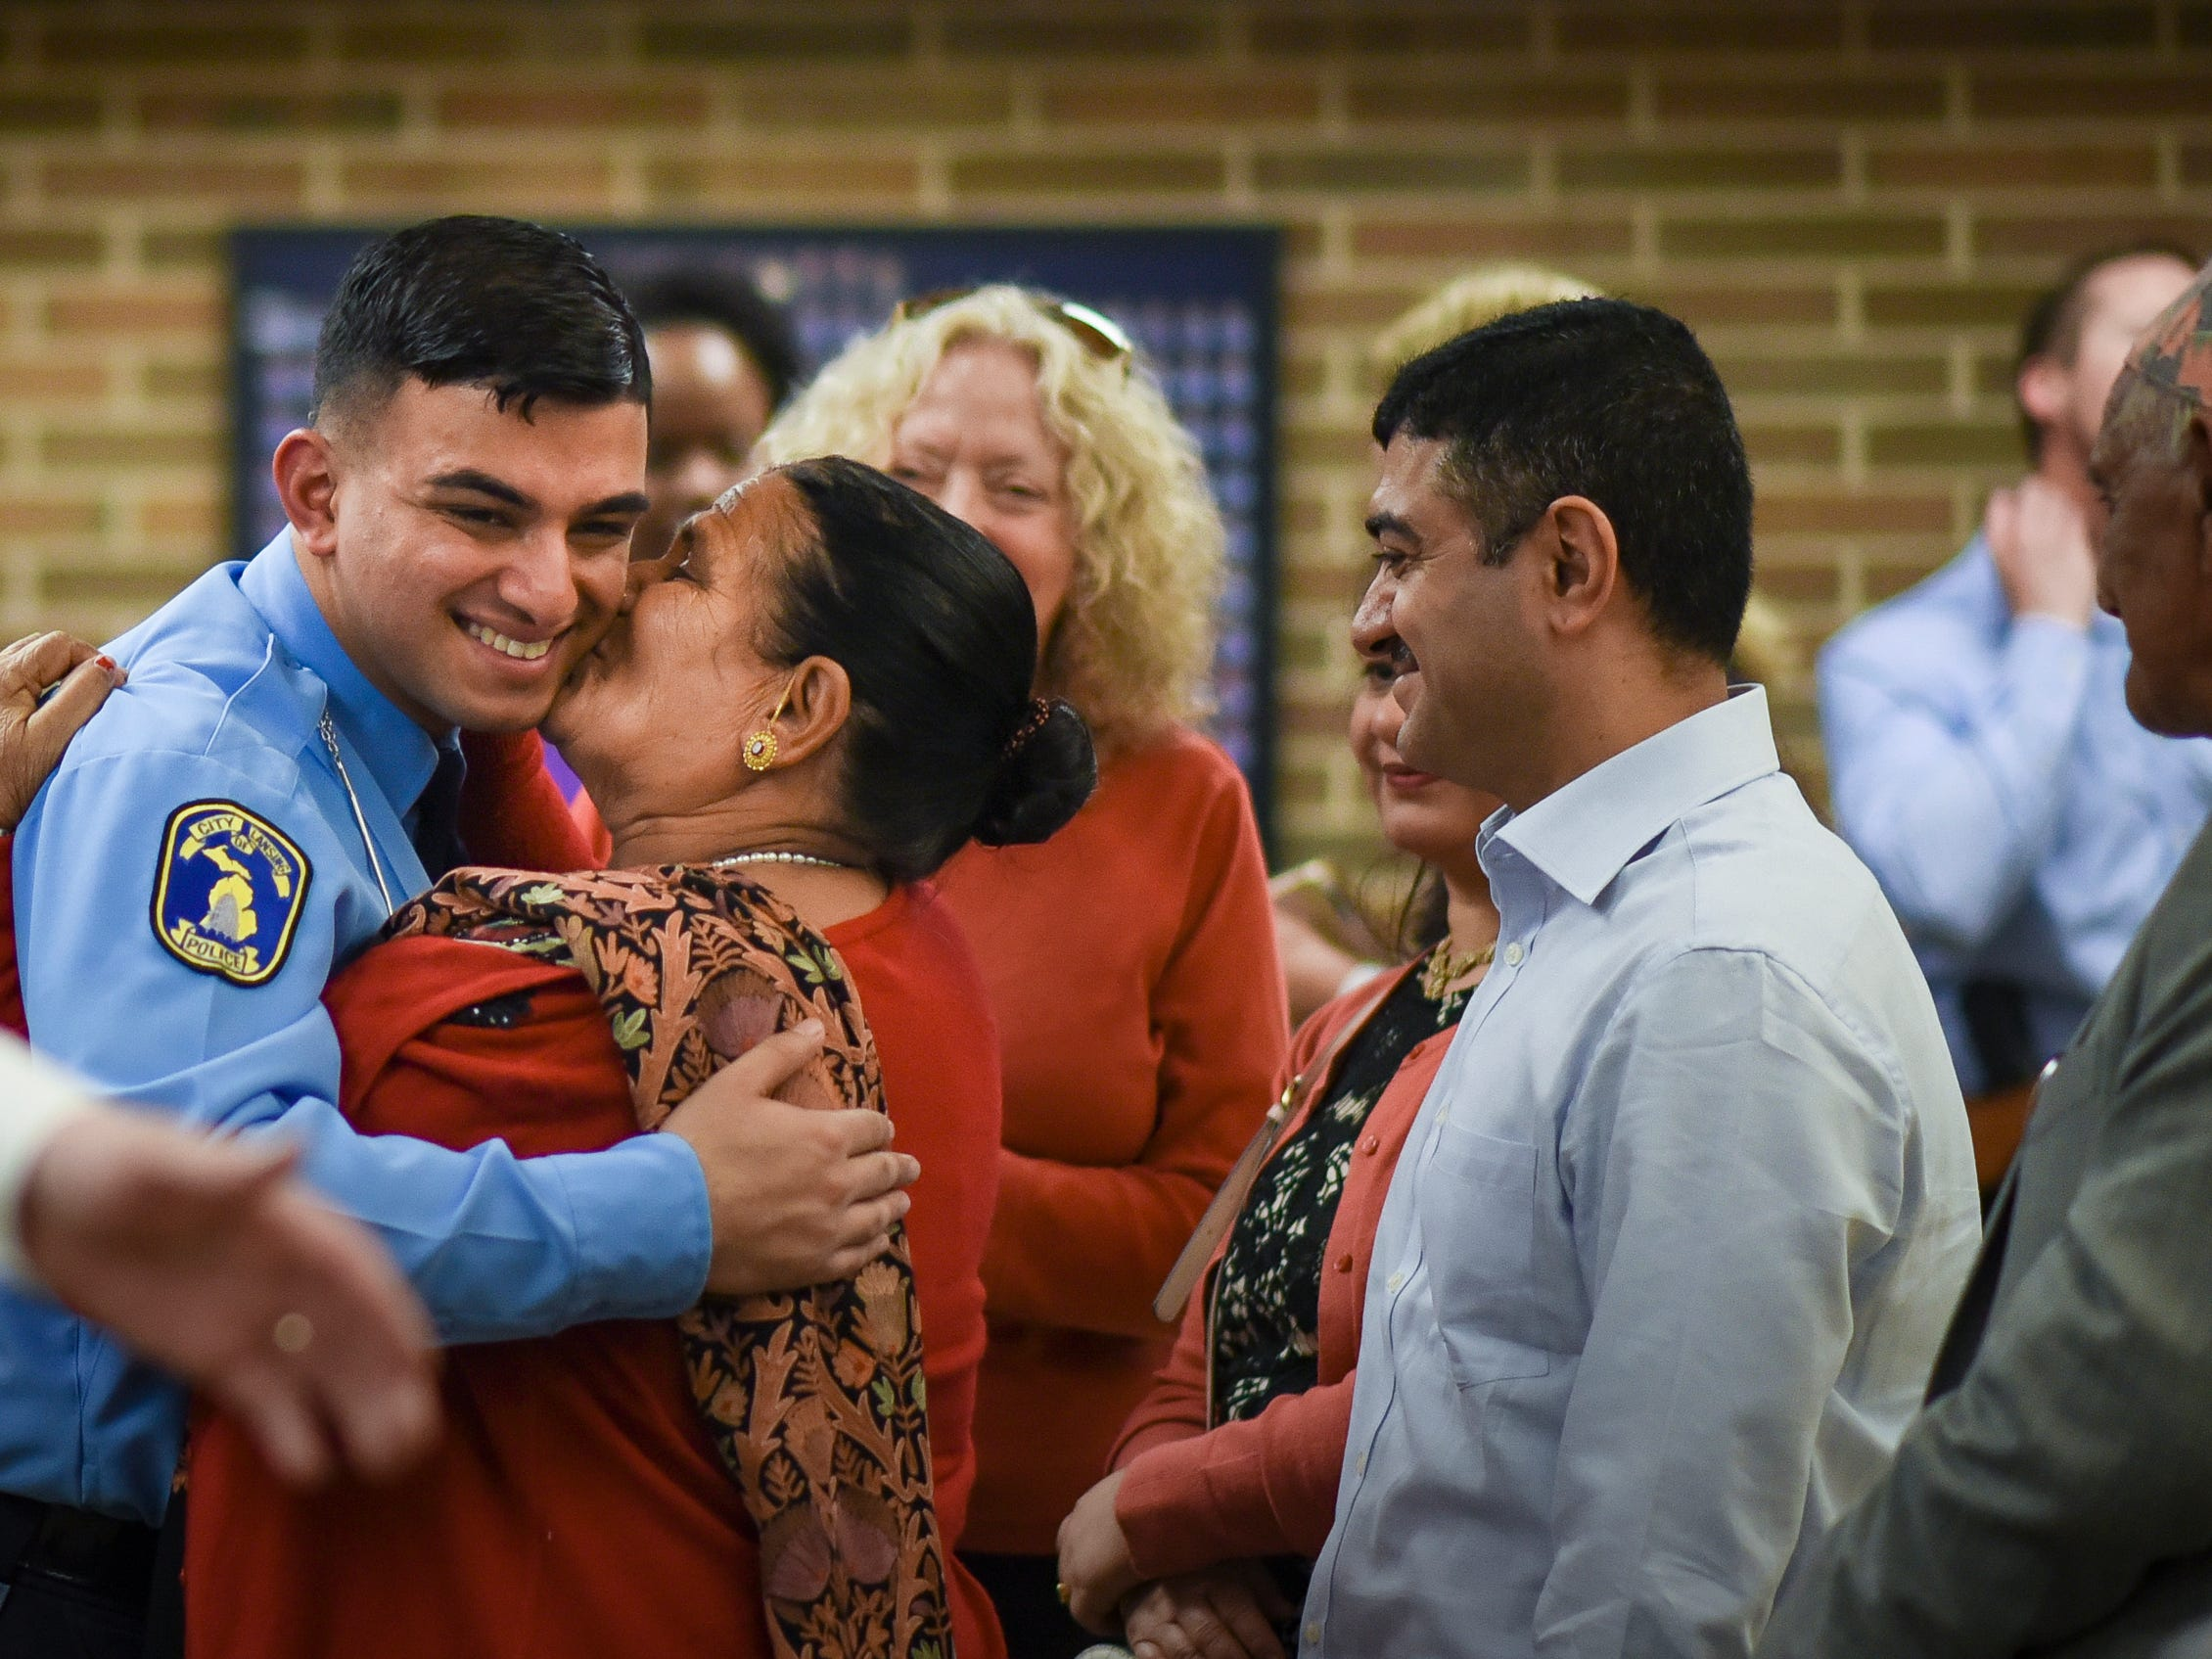 "Officer Sagar ""Sam"" Kandel, 21, and his grandmother Bisnu Kandel share a hug, Monday, May 6, 2019,  after he was sworn in as one of 13 new officers at the Lansing Police Department.  Also pictured is his father Romnath, middle, and grandfather Gangadha, far right.  Kandel's grandparents traveled about 7,500 miles from their home in Nepal to attend his graduation from the 103rd Mid-Michigan Police Academy, and to be at their grandson's swearing in ceremony."